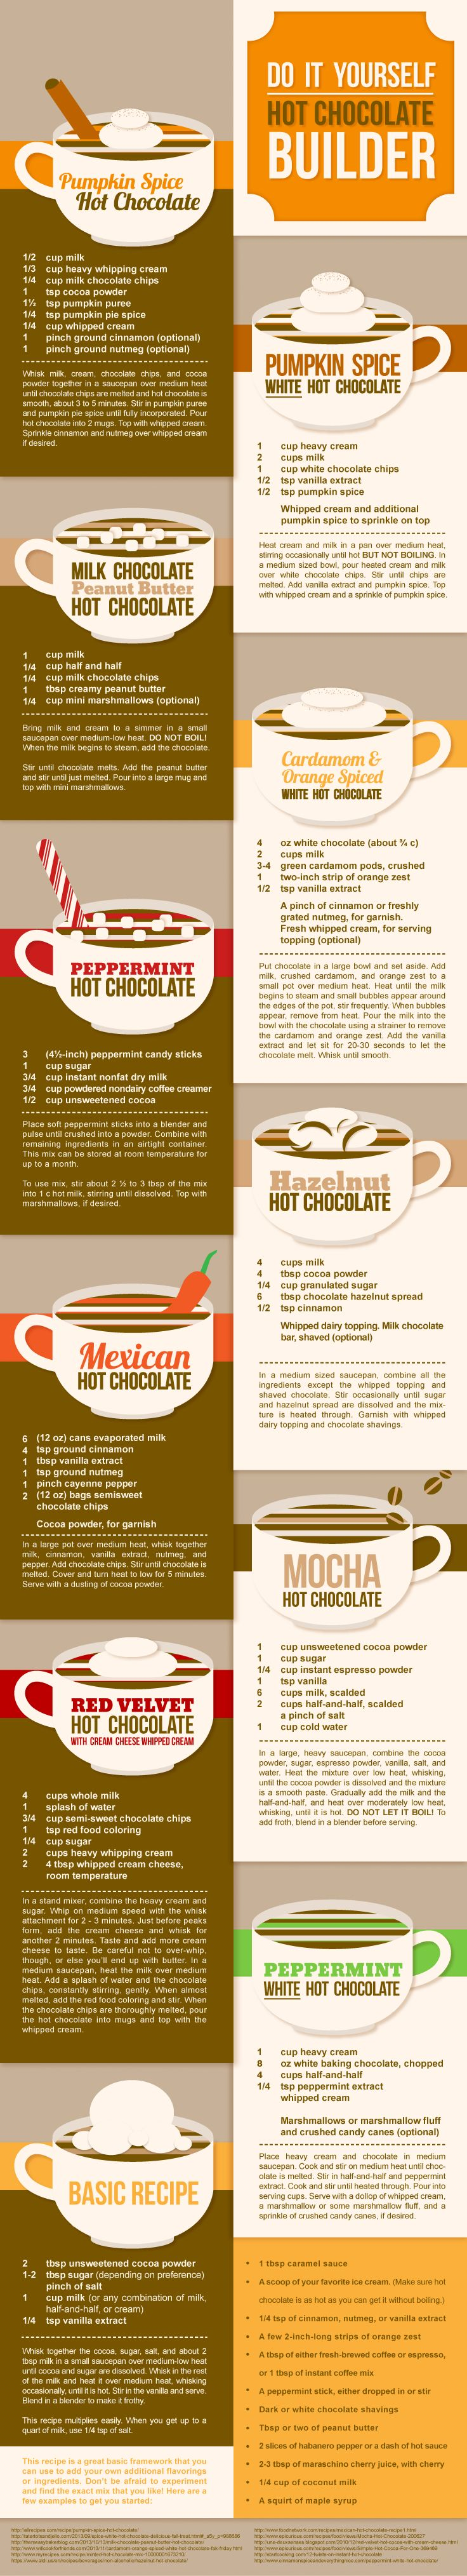 It's winter time, and it's cold. Mix up your hot chocolate with some fun new flavors. Click here for 11 delicious hot chocolate recipes.